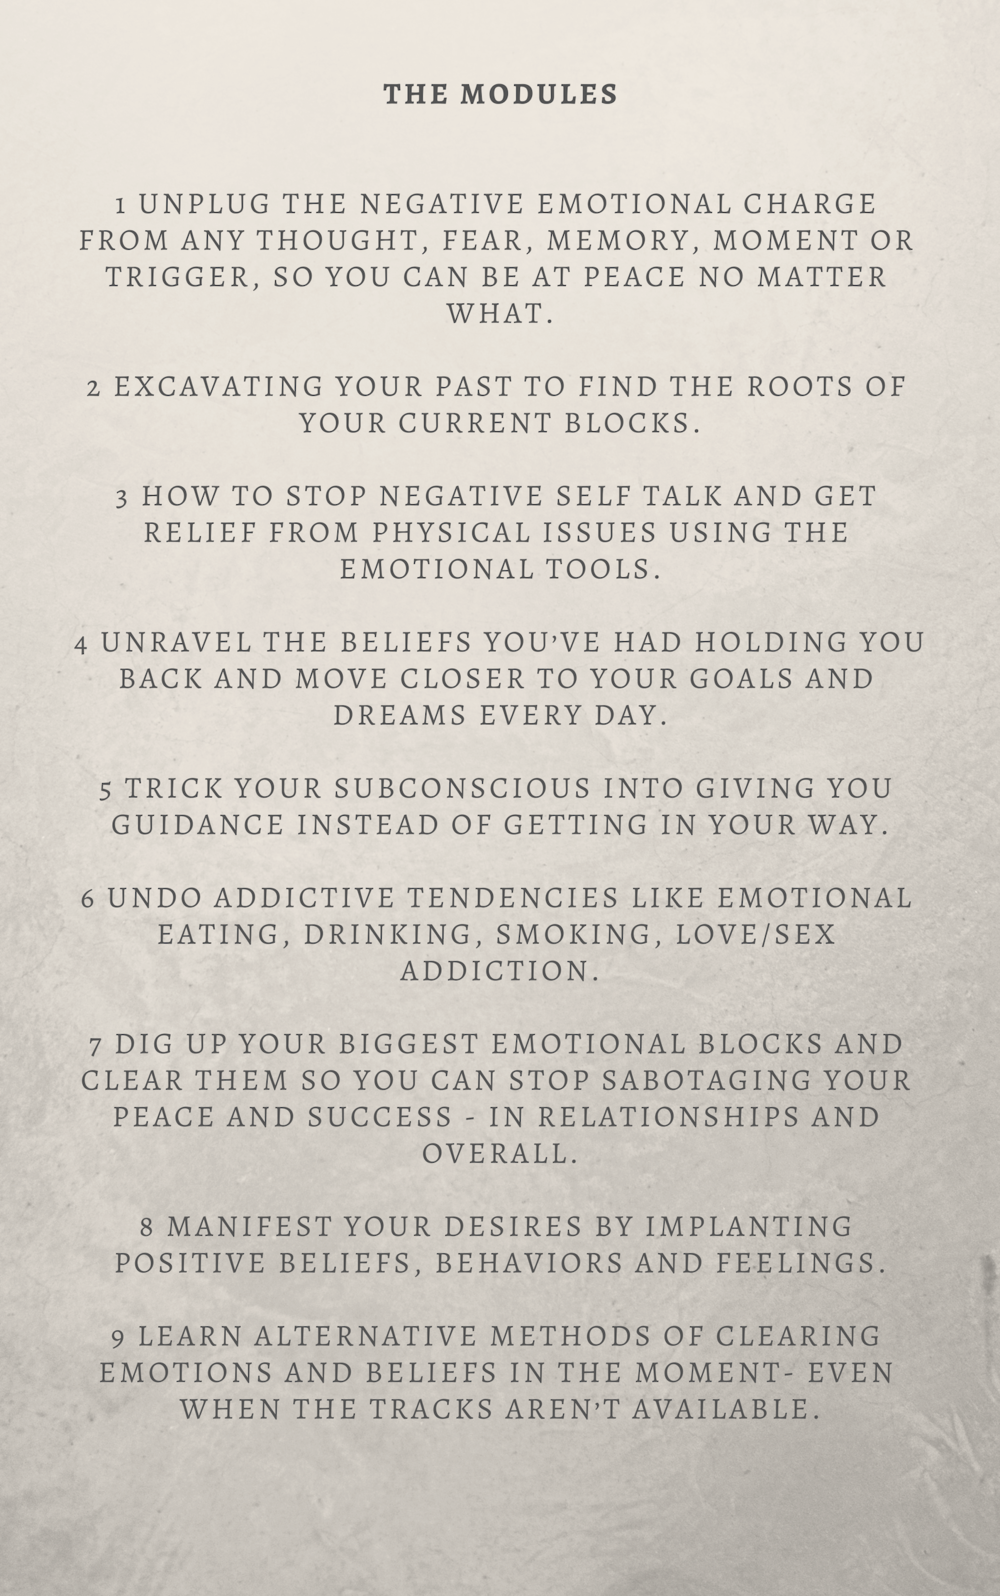 MODULES 1 Unplug the negative emotional charge from any thought, fear, memory, moment or trigger, so you can be at peace no matter what. 2 Excavating your past to find the roots of your current blocks. 3 How to stop .png